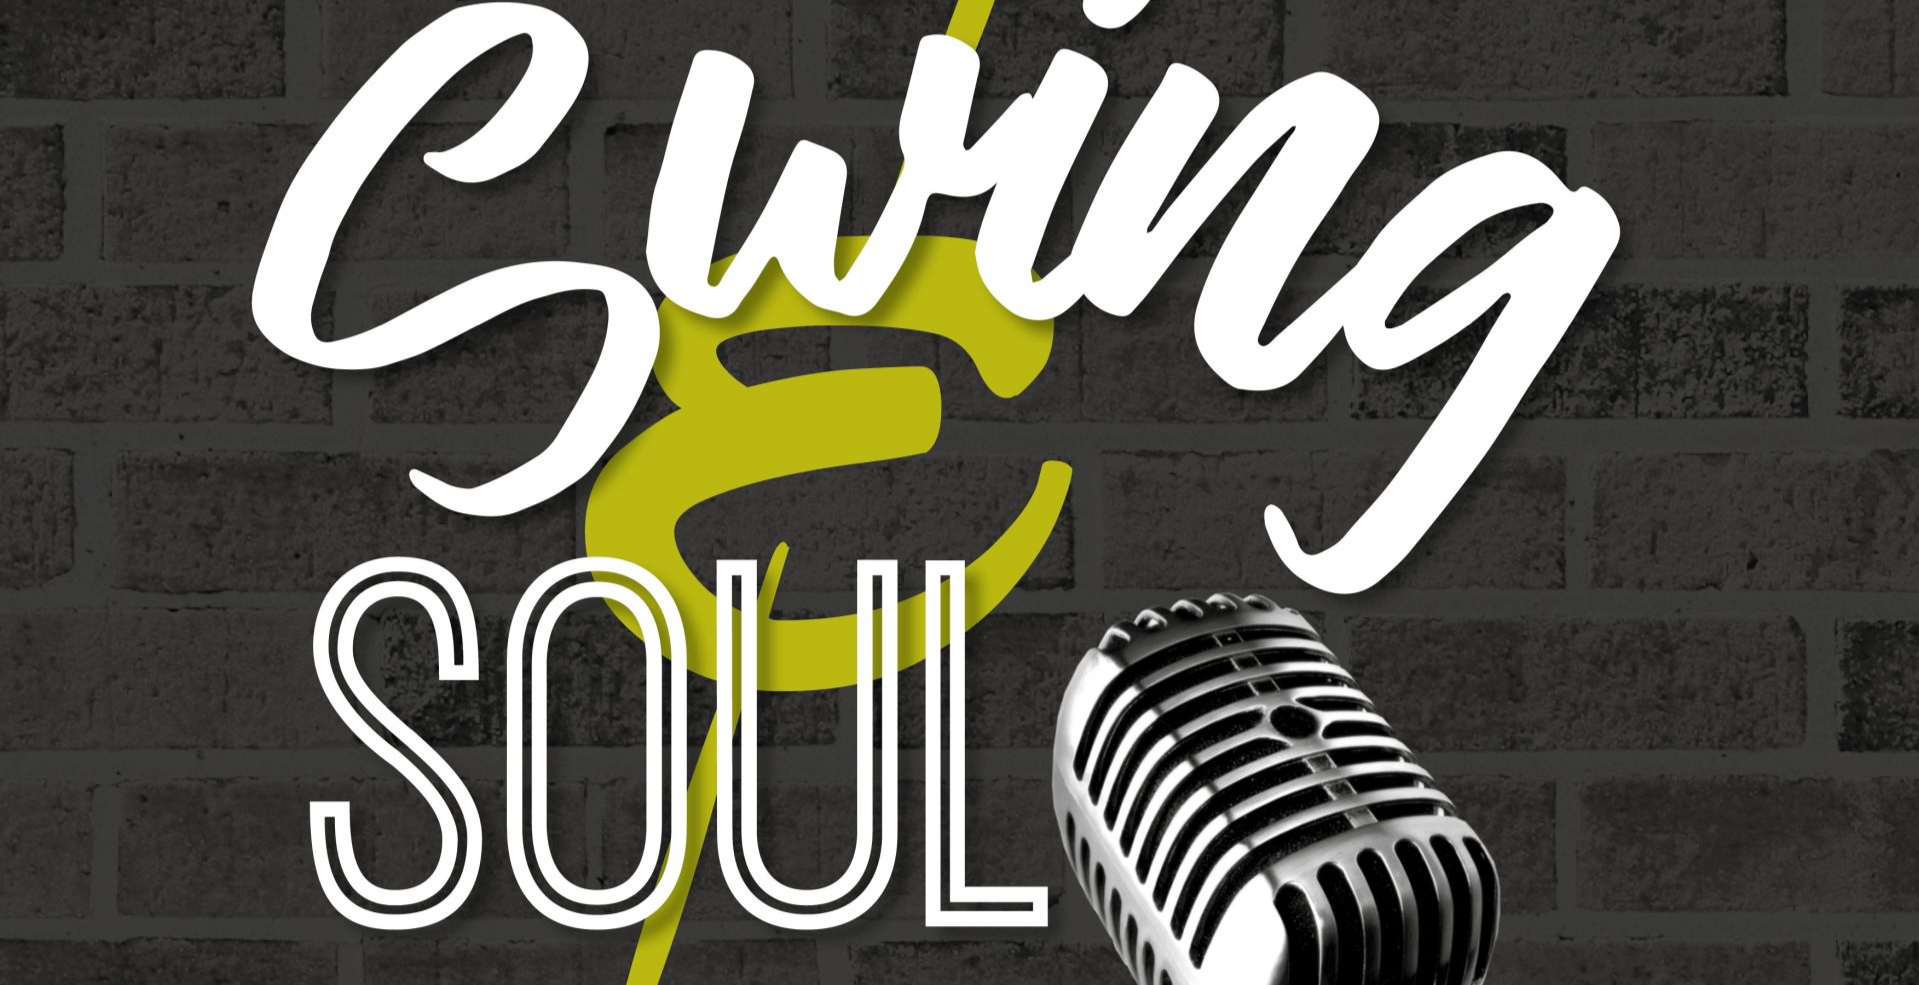 Sunday Bank Holiday - Swing & Soul Duo - Sensational Duo